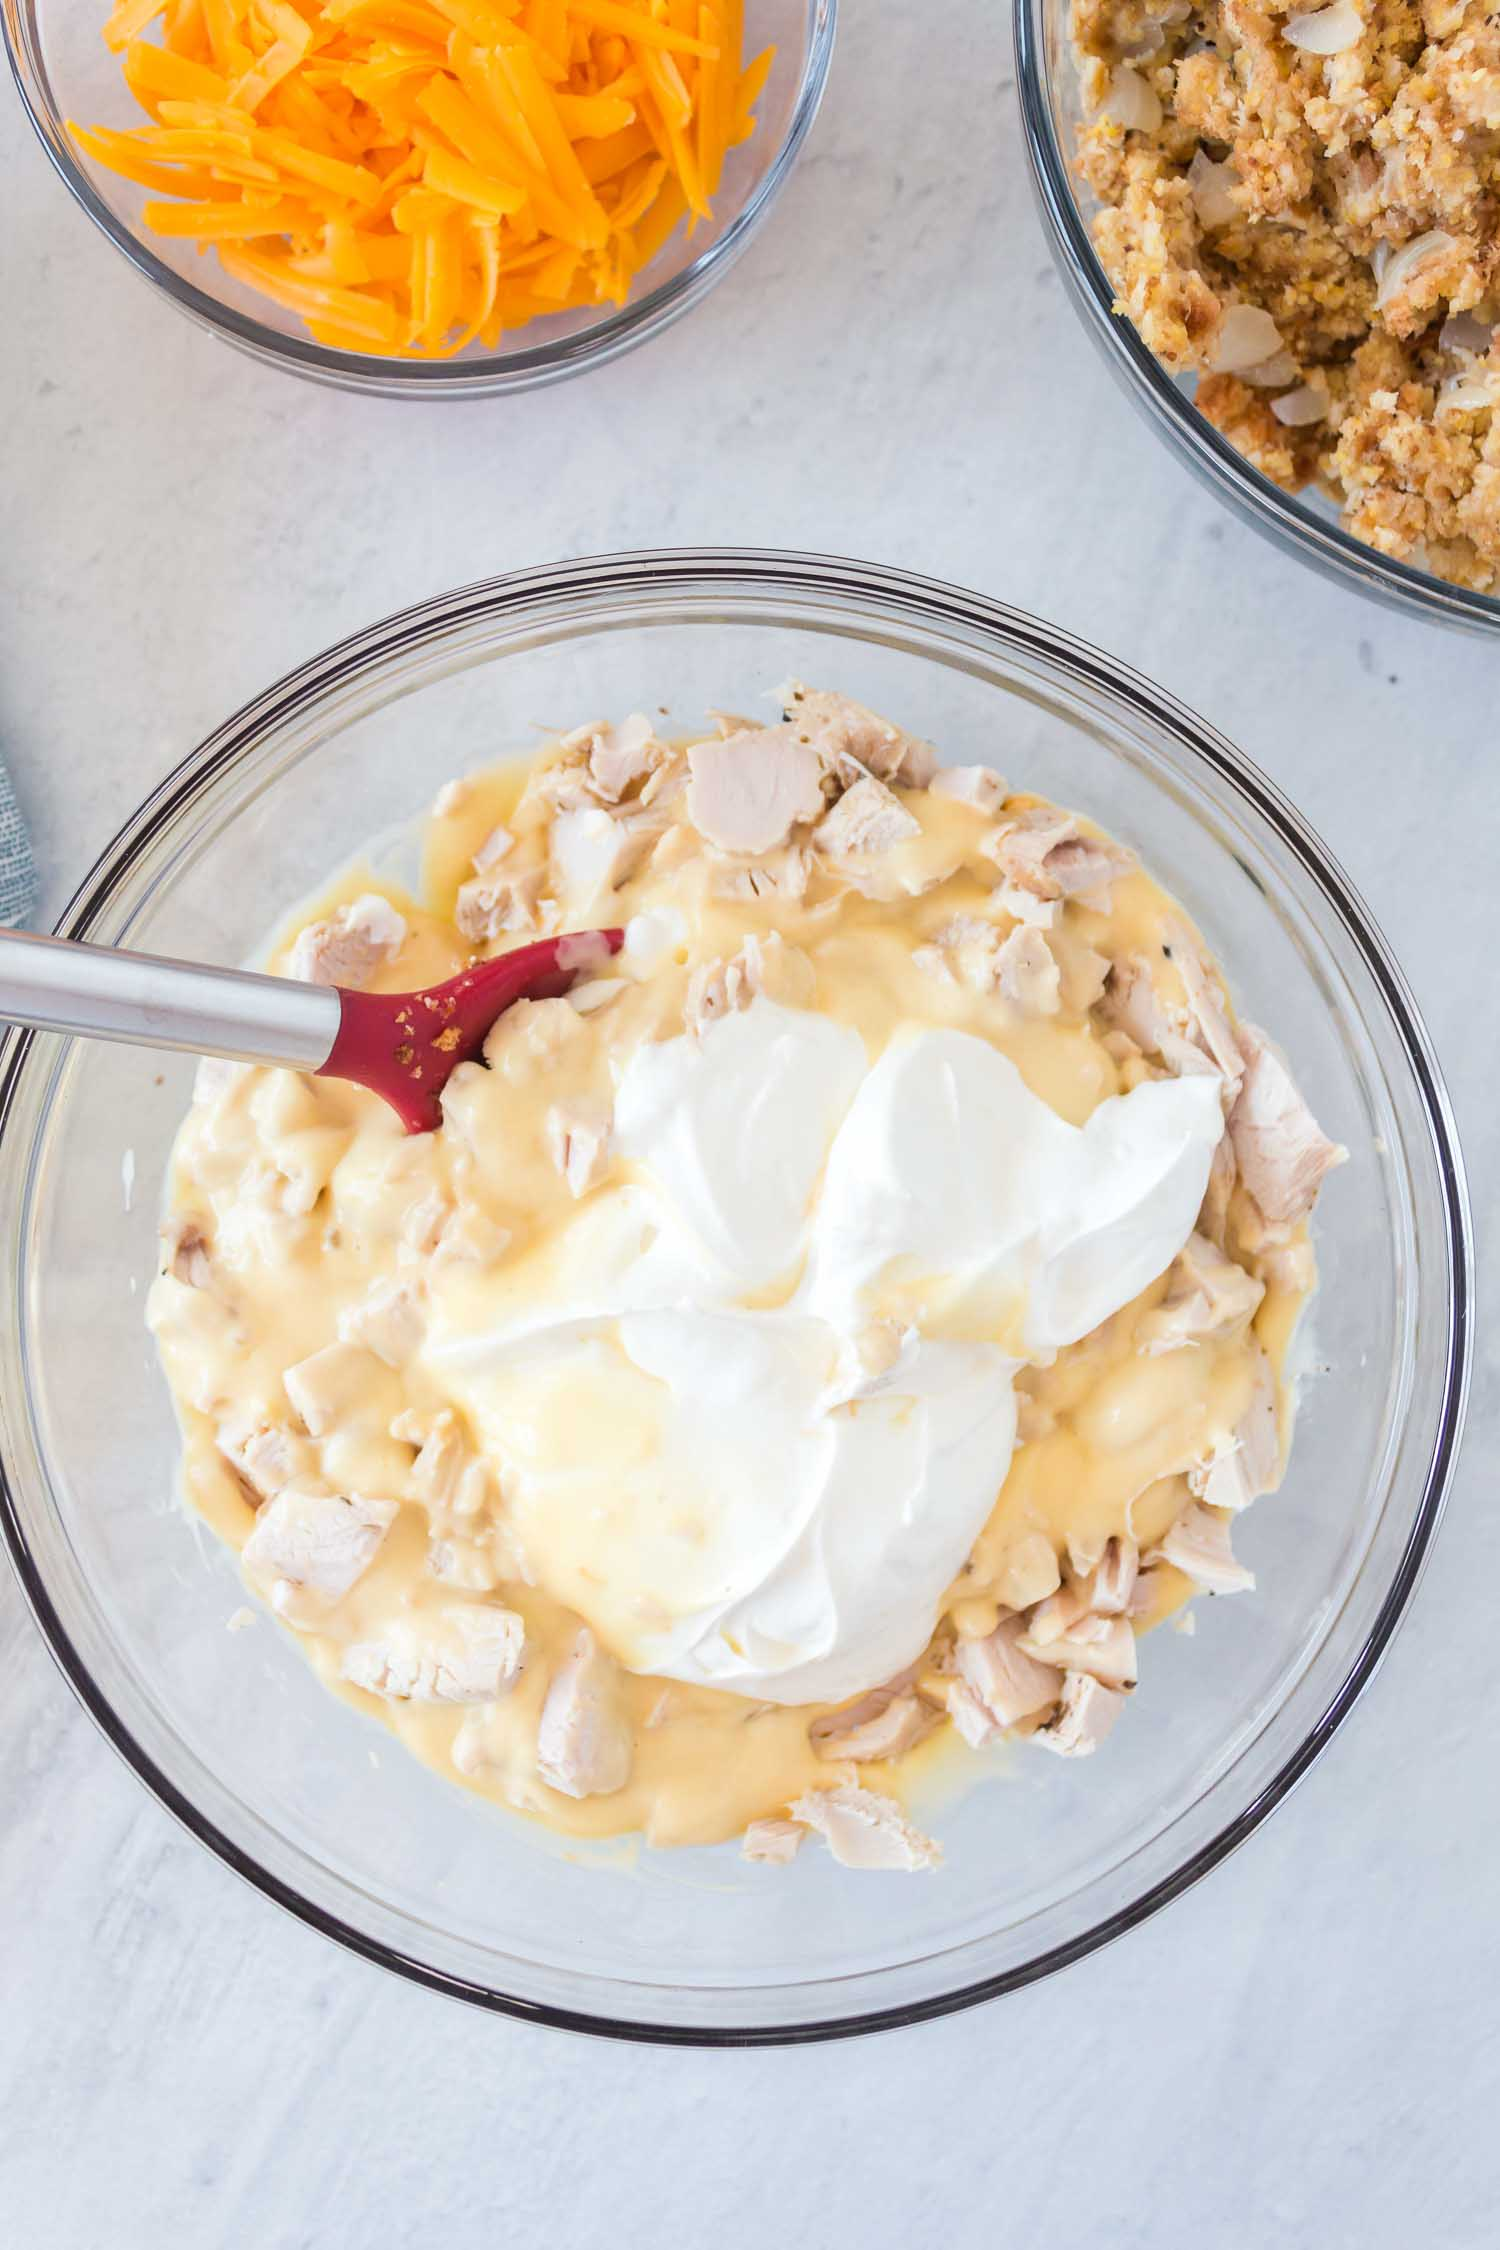 A glass bowl with turkey, gravy and sour cream with a red and metal spoon inside of it with a bowl of grated cheese and a bowl of stuffing behind it.